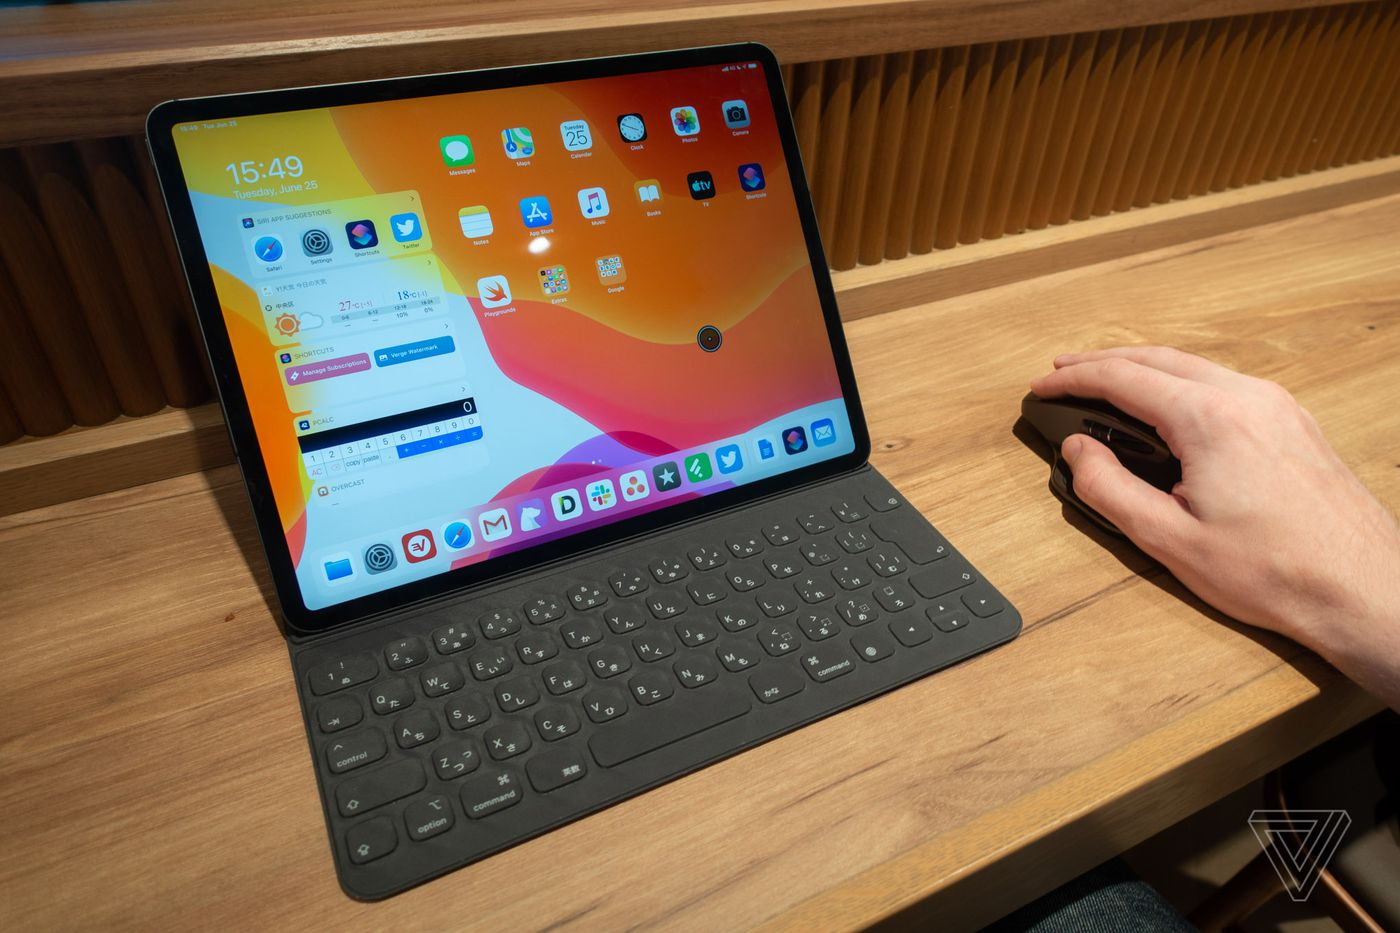 Here S How Mouse Support Could Change The Way You Use Your Ipad